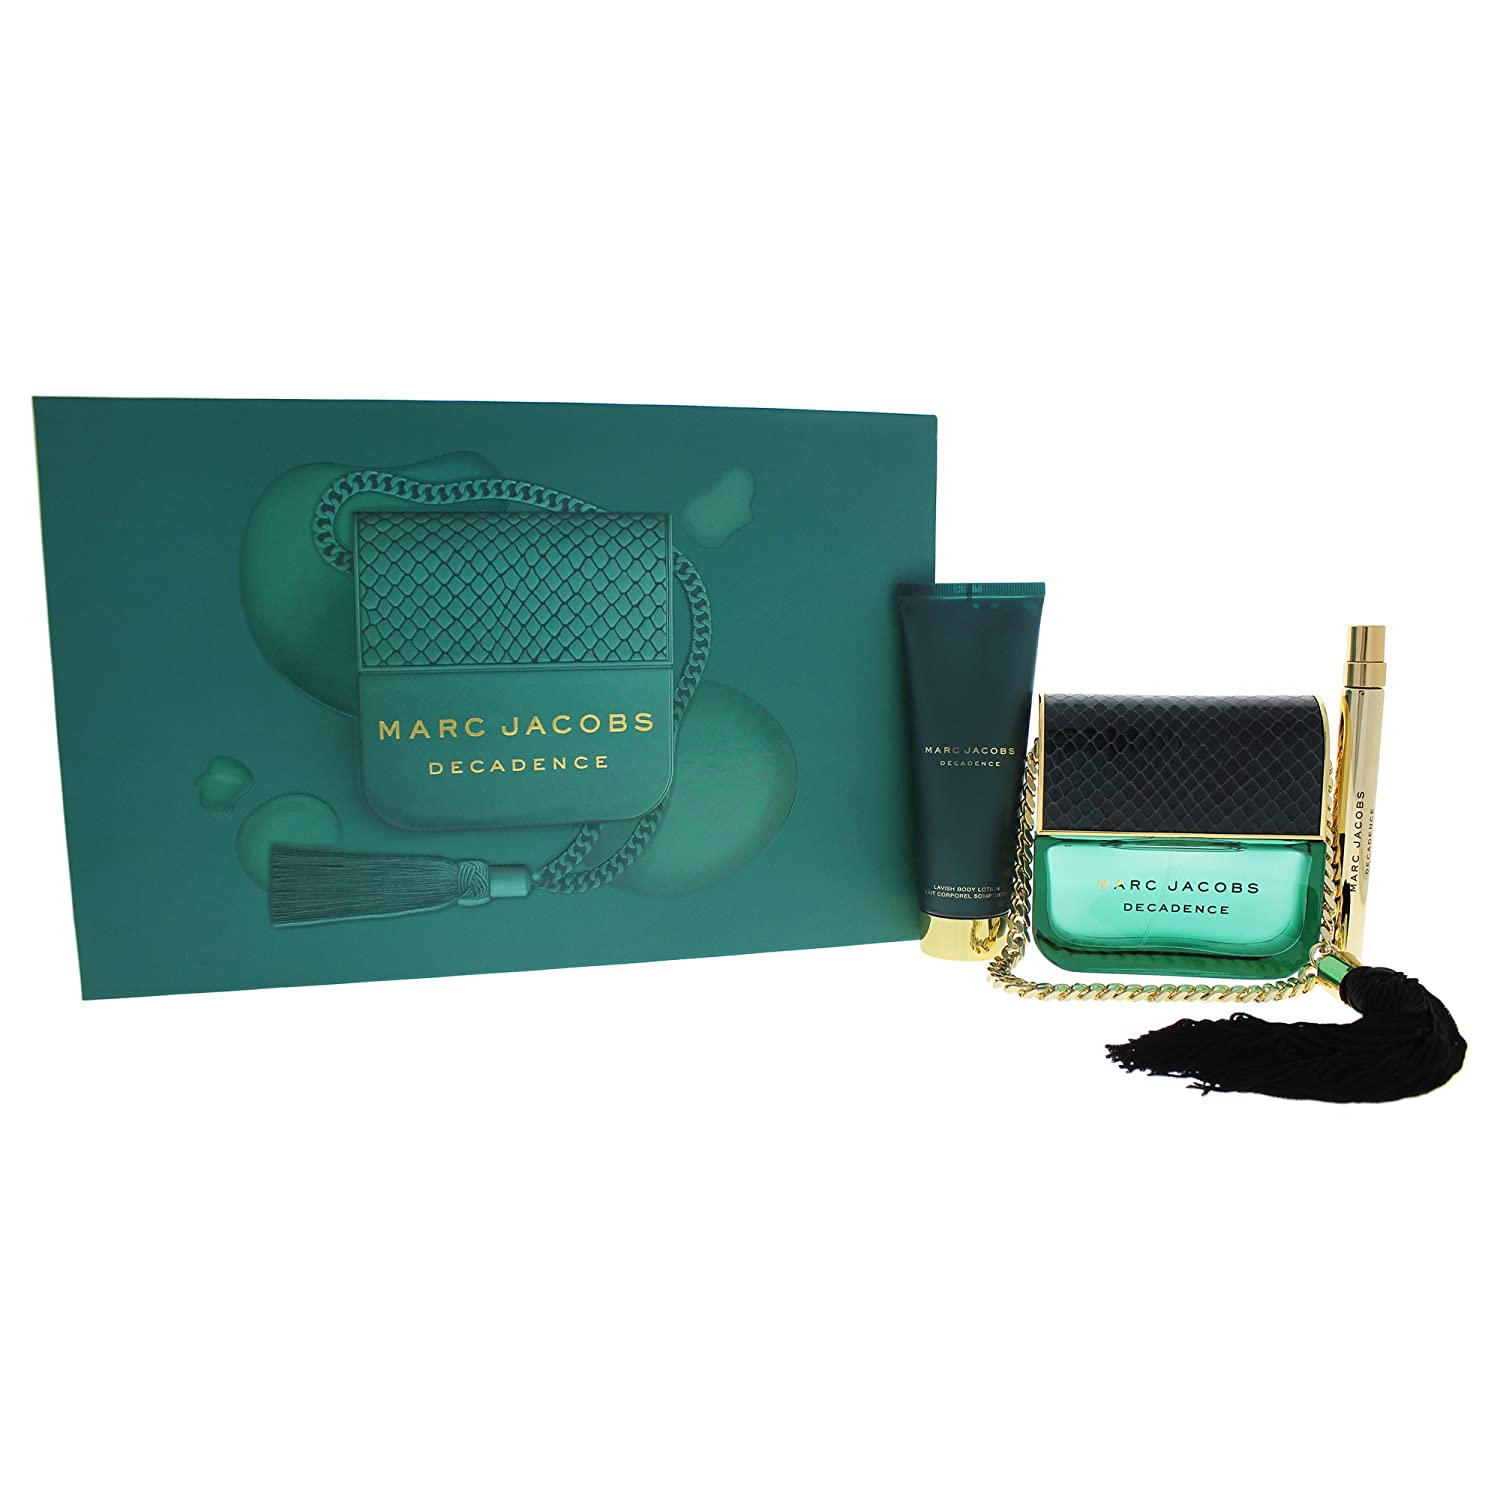 Marc Jacobs Decadence Marc Jacobs Gift Set 3 pc Women Coty